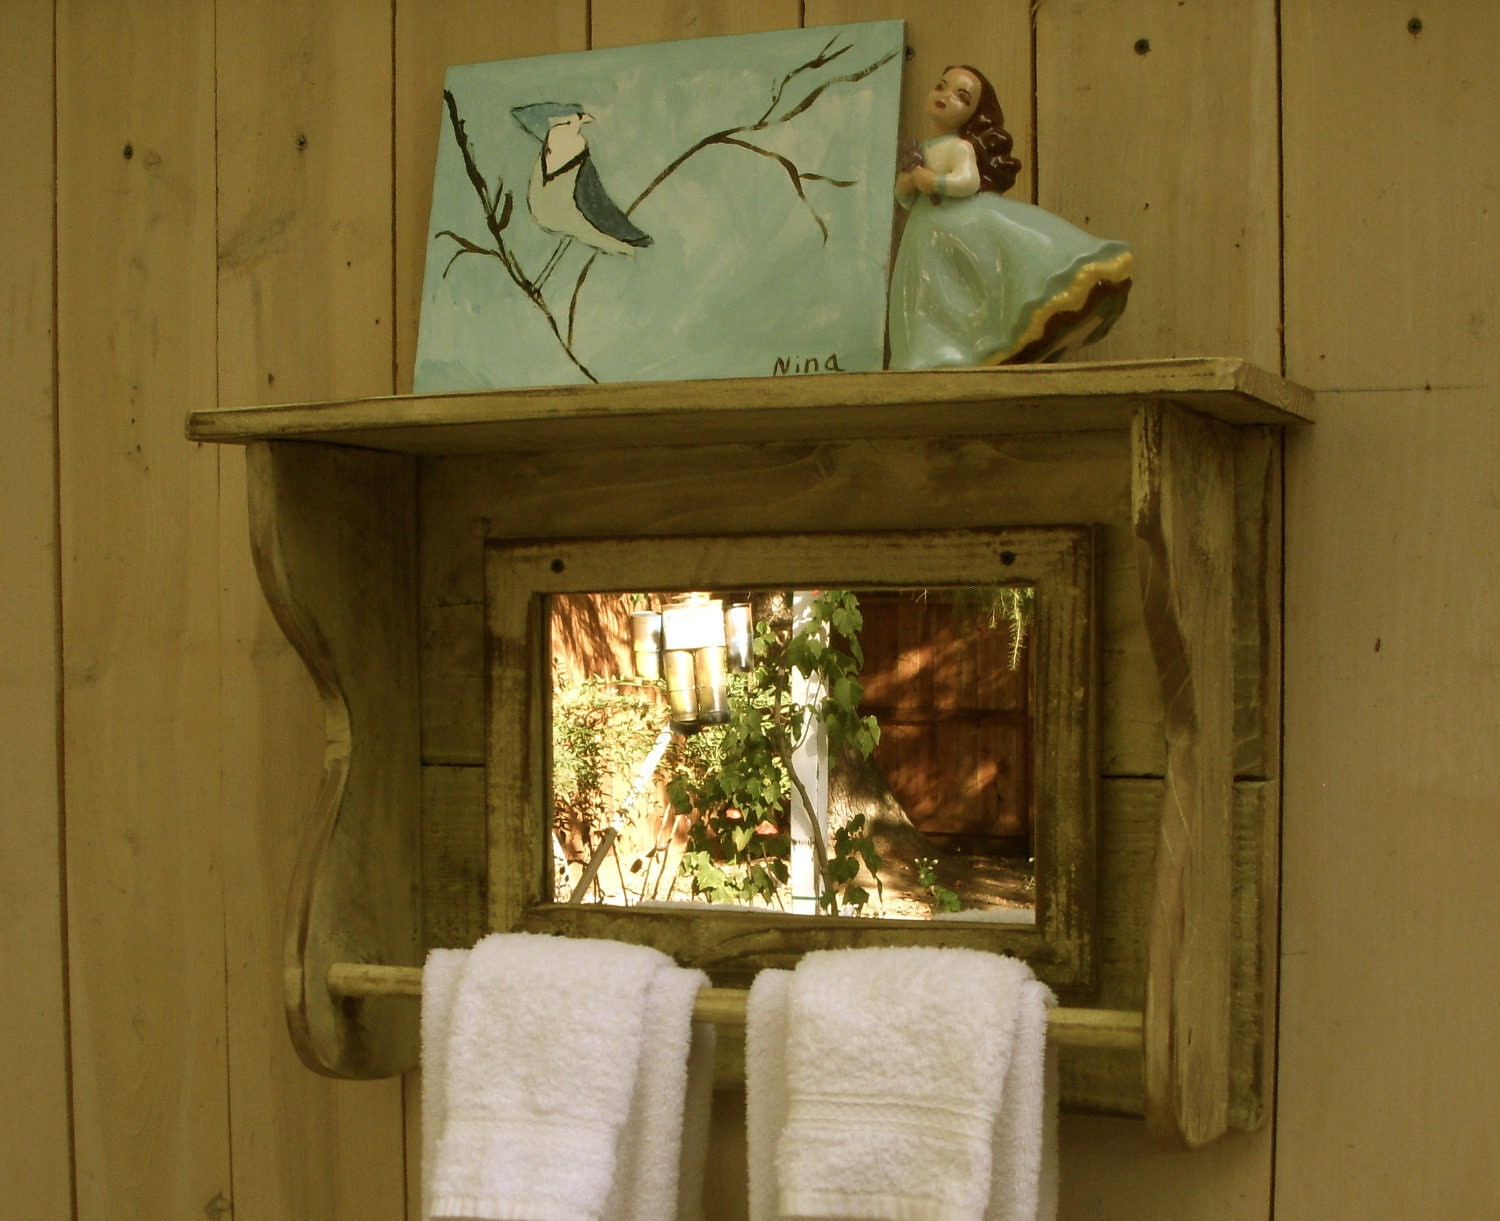 Very Impressive portraiture of Mirror Shelf Reclaimed Wood Towel Bar for by honeystreasures with #402F0B color and 1500x1221 pixels